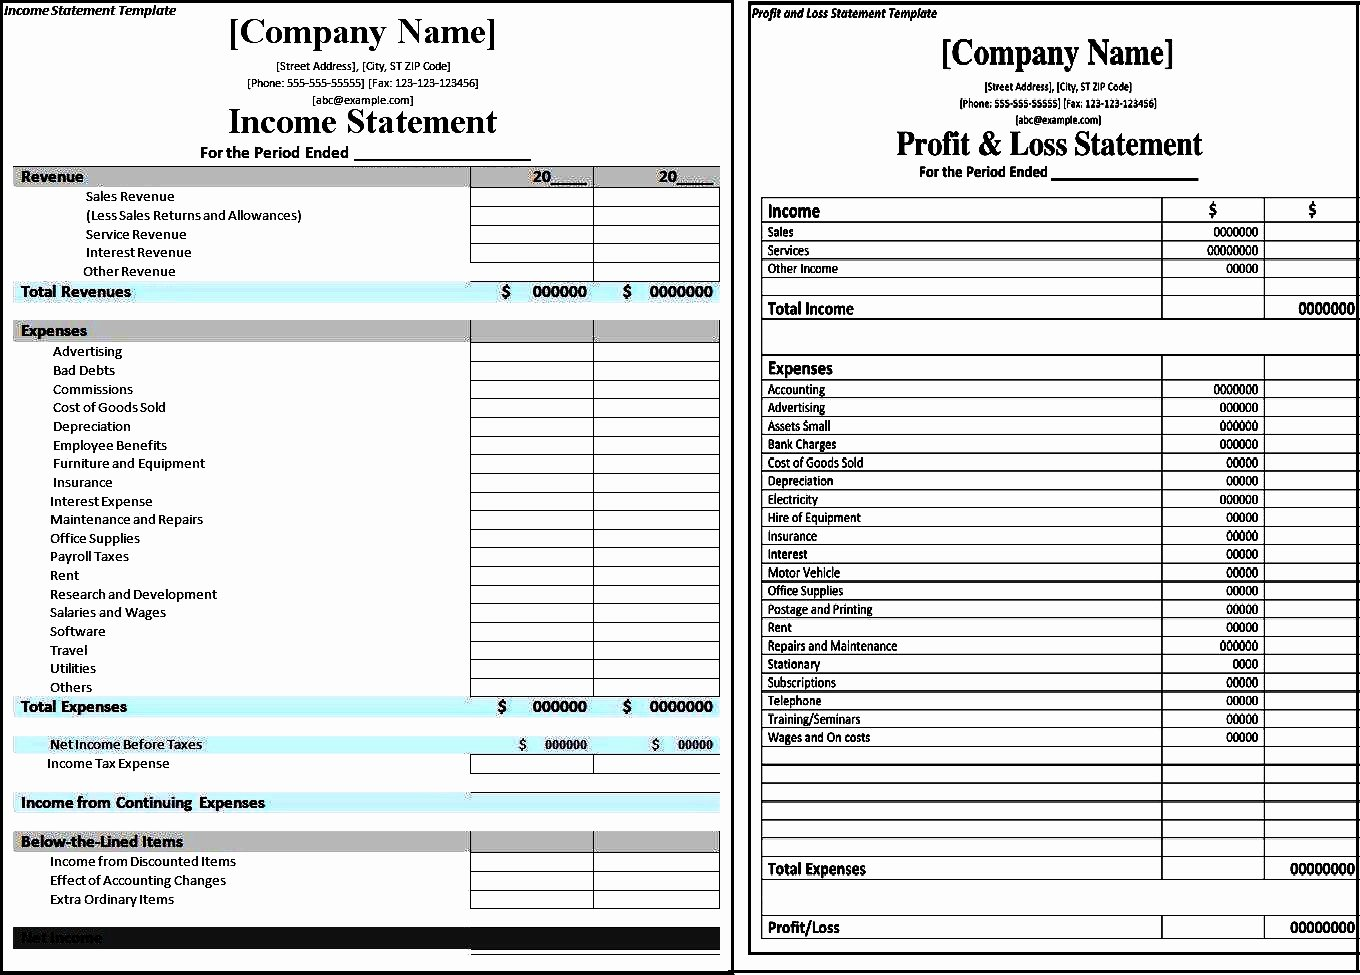 Profit Loss Excel Template Awesome Profit and Loss Statement Template Excel